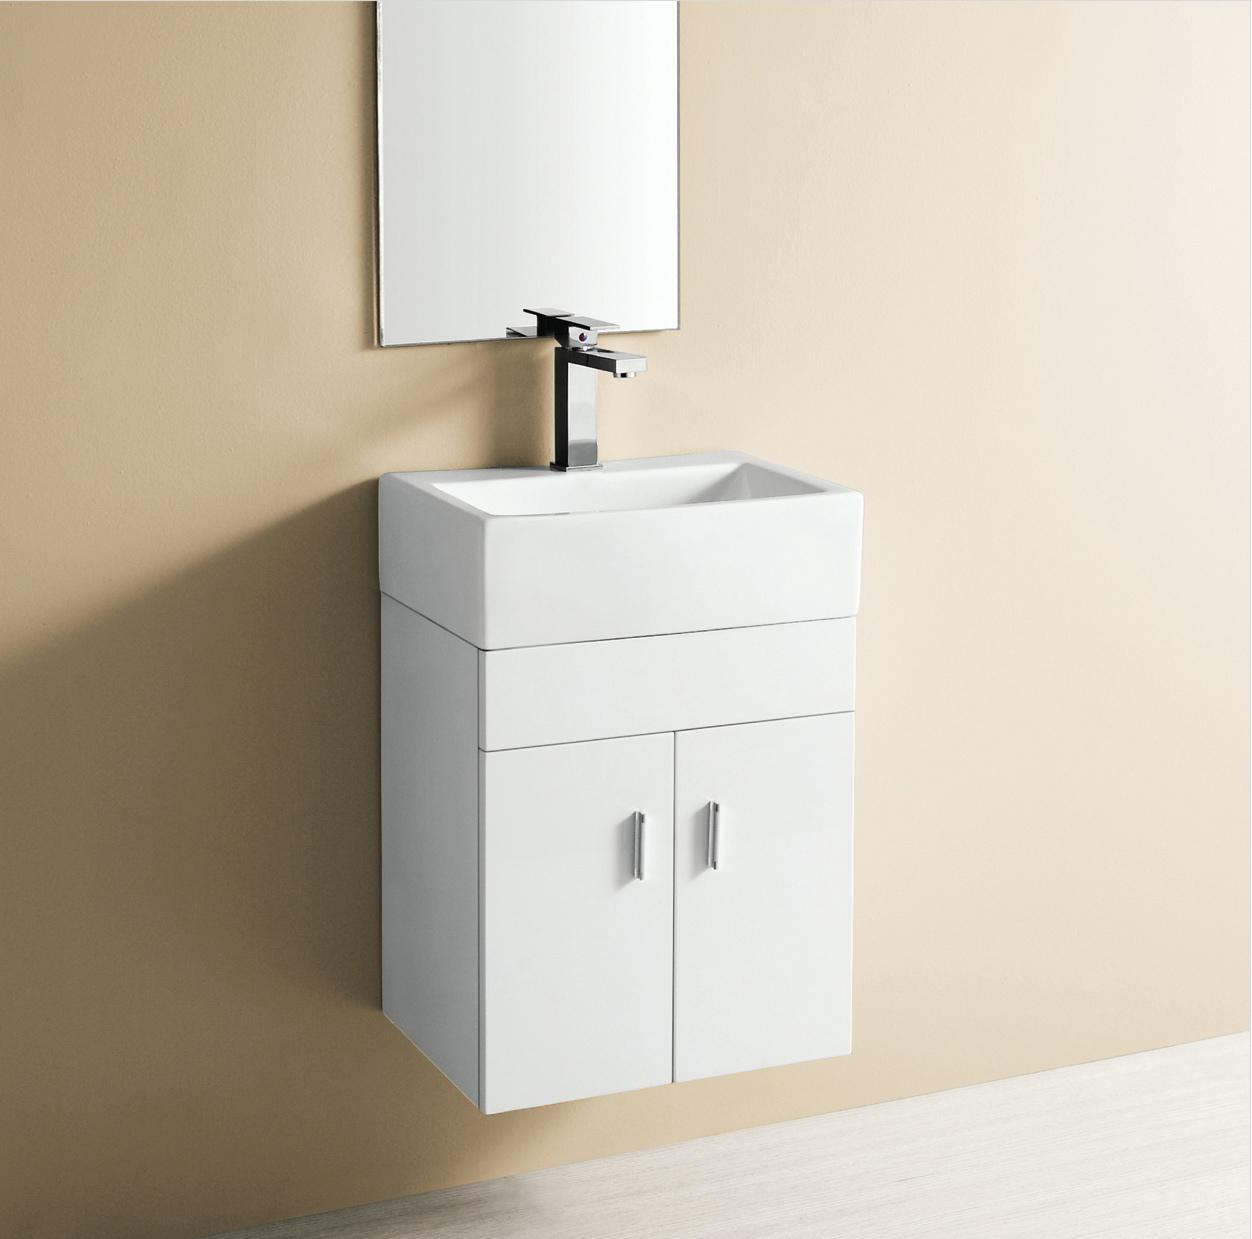 Elite Sinks, Sinks, Rectangle Sink, Bathroom Sink, Vanity Set, Vanity,